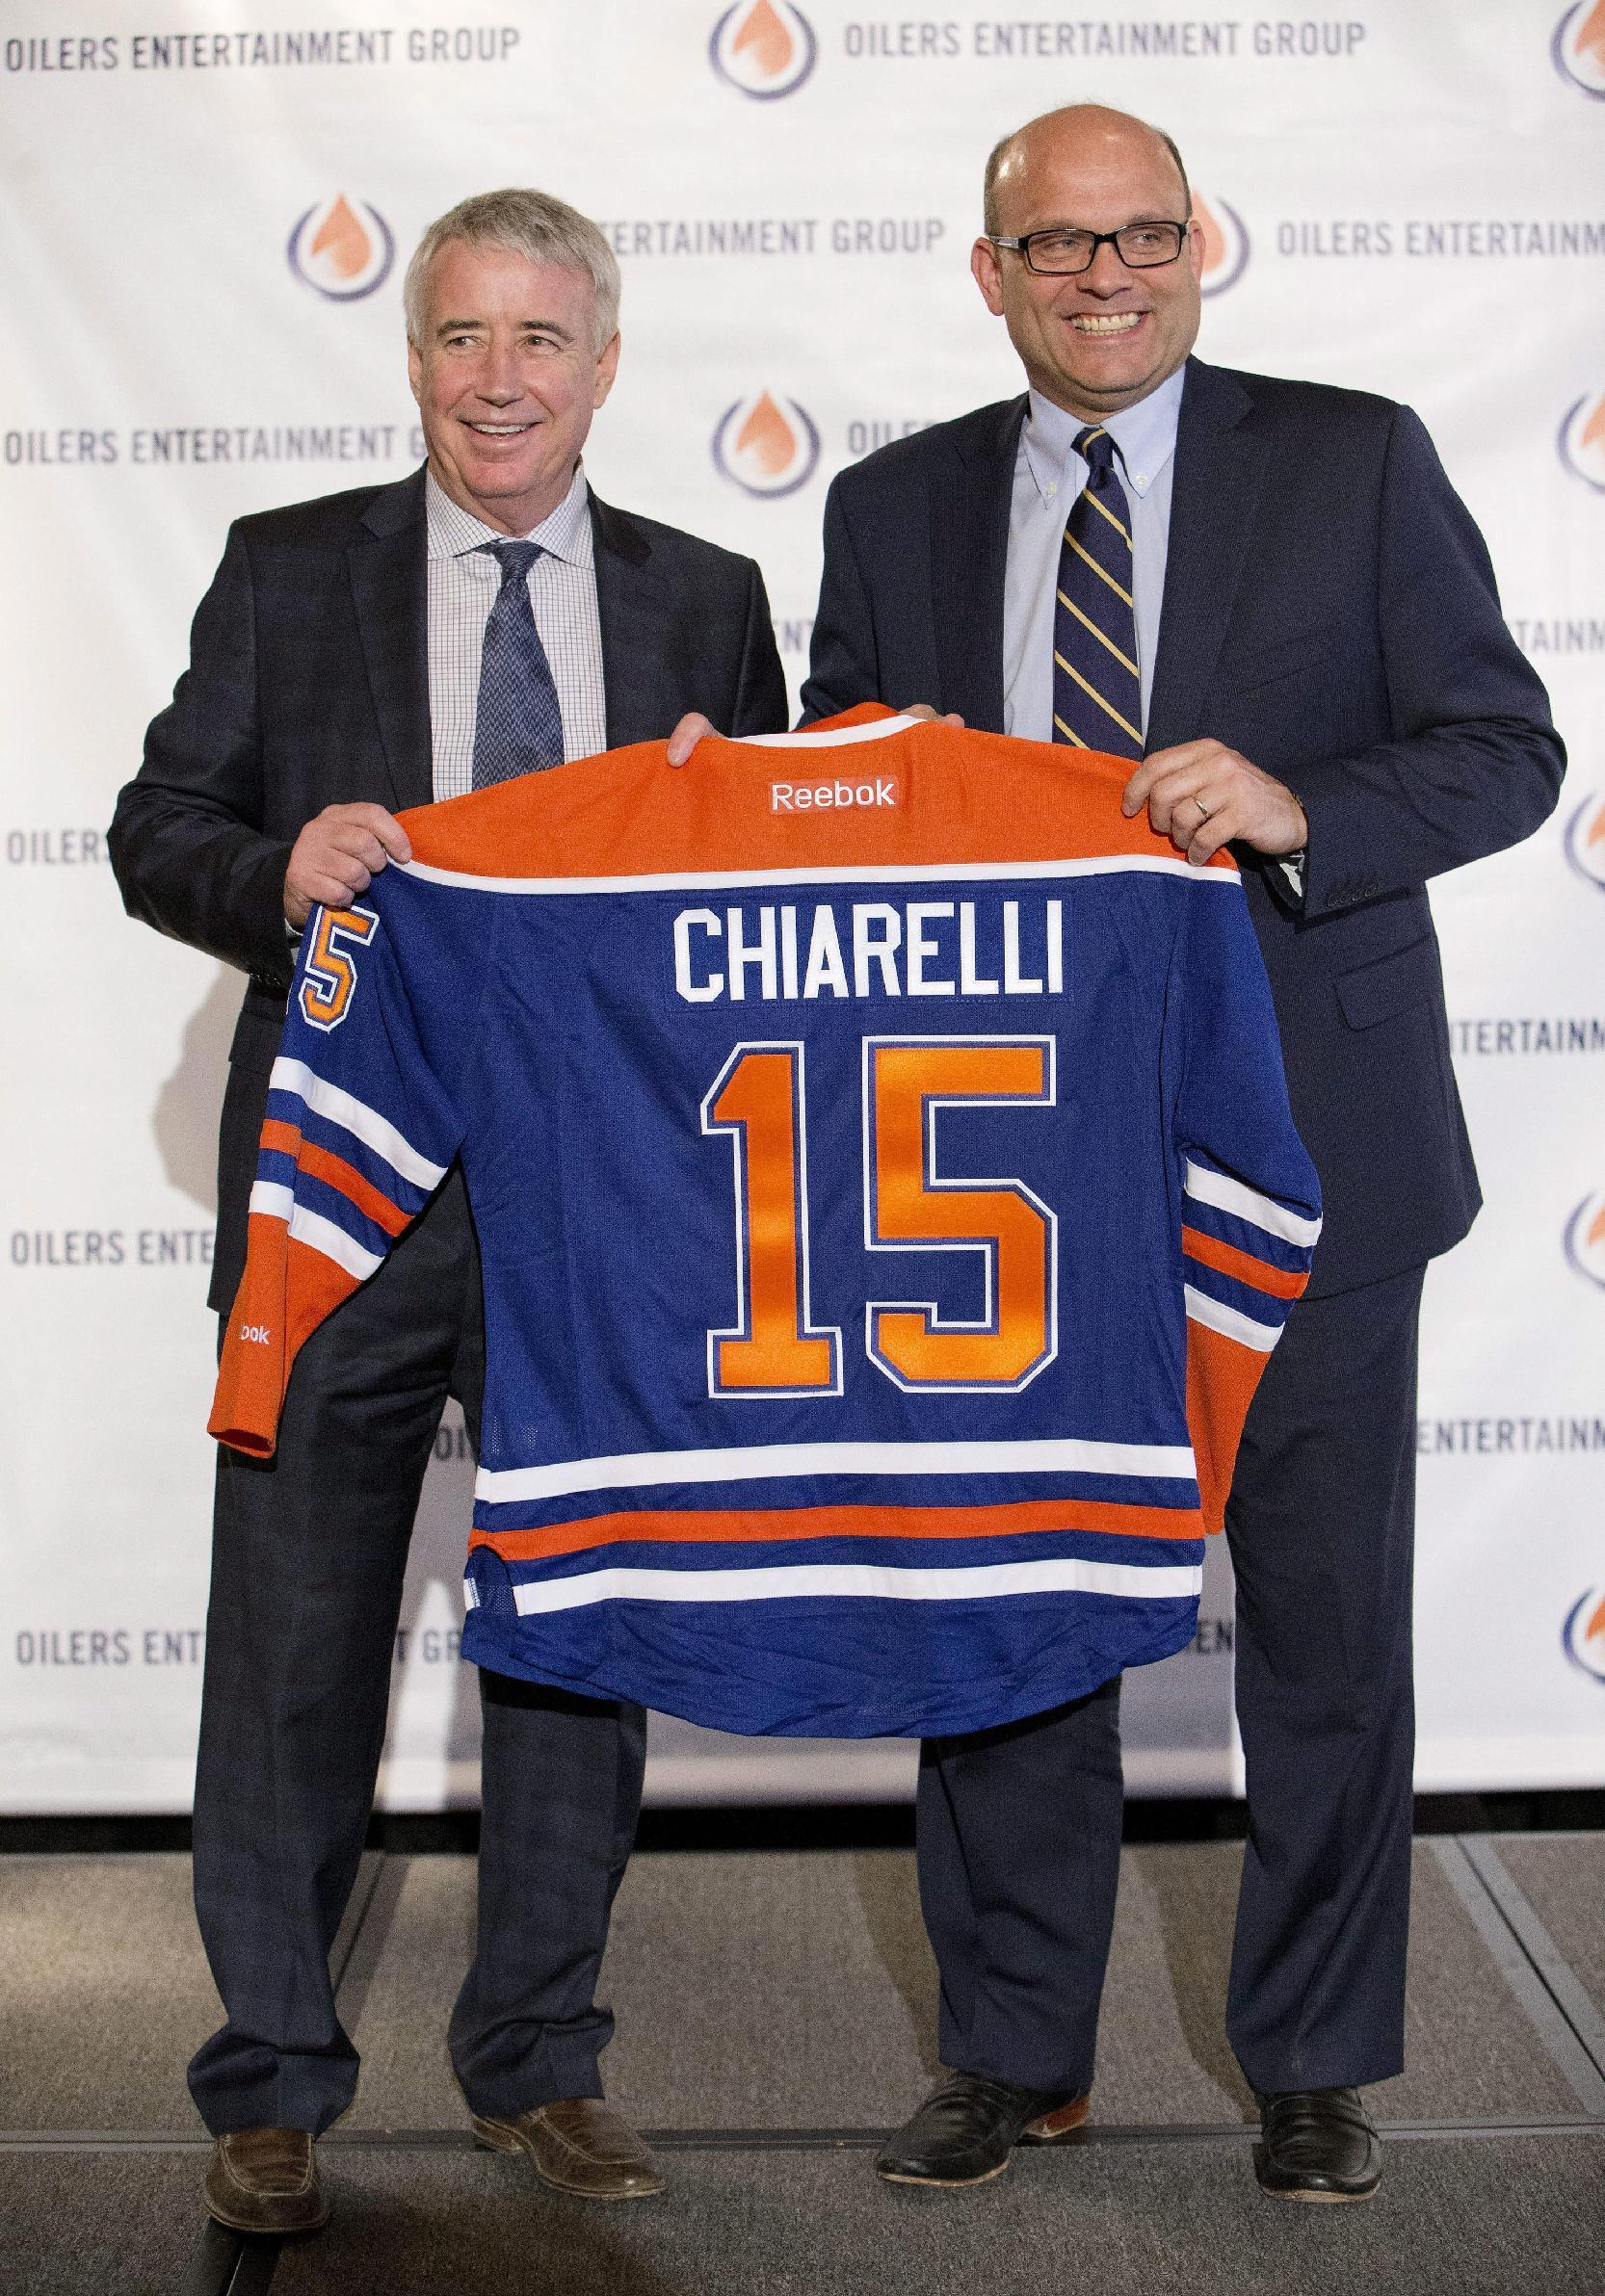 Oilers overhaul front office after disappointing season